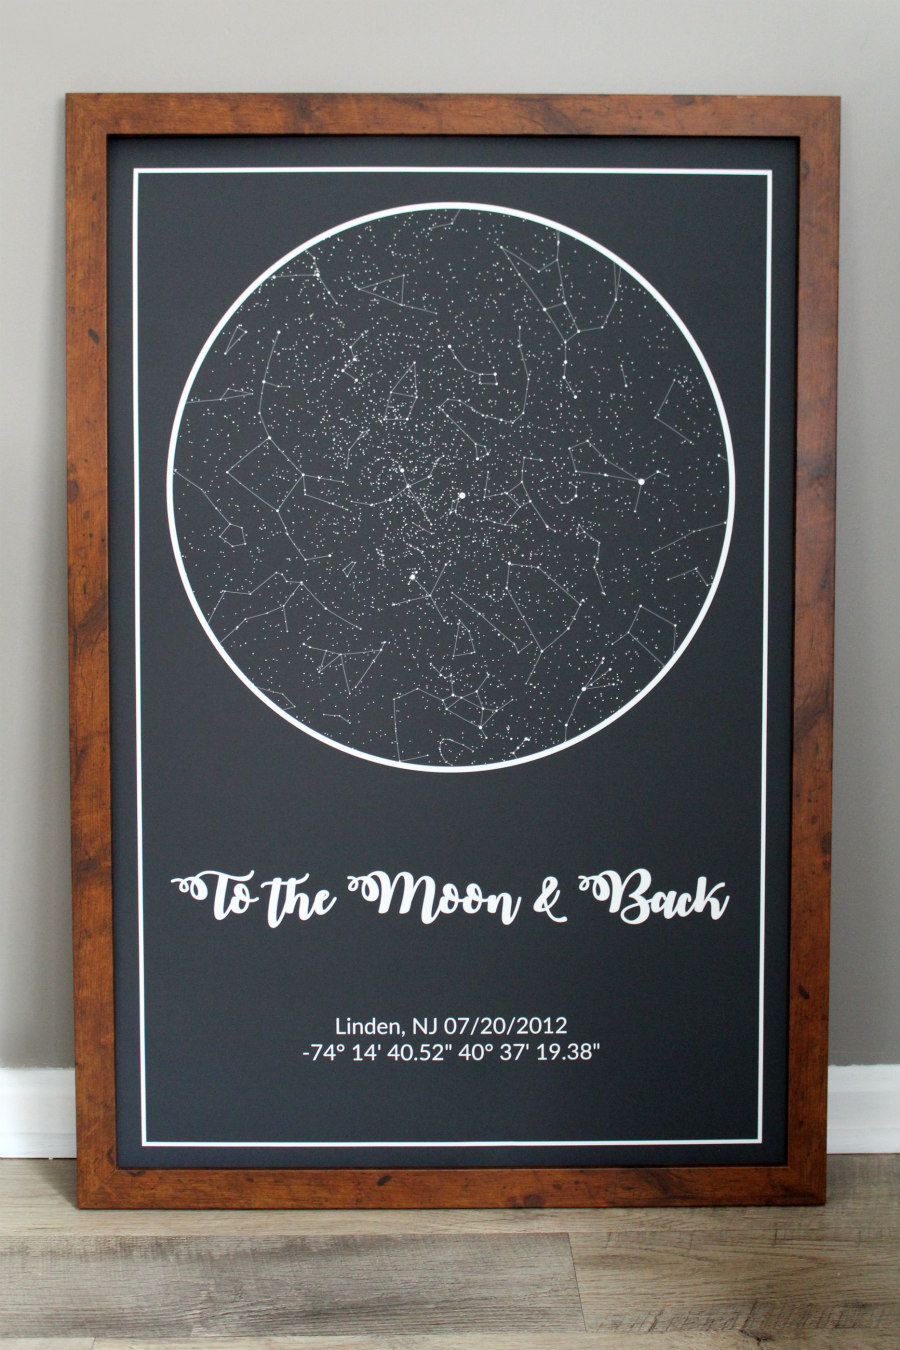 To the Moon & Back: A Star Map of Our Wedding Date   Living La